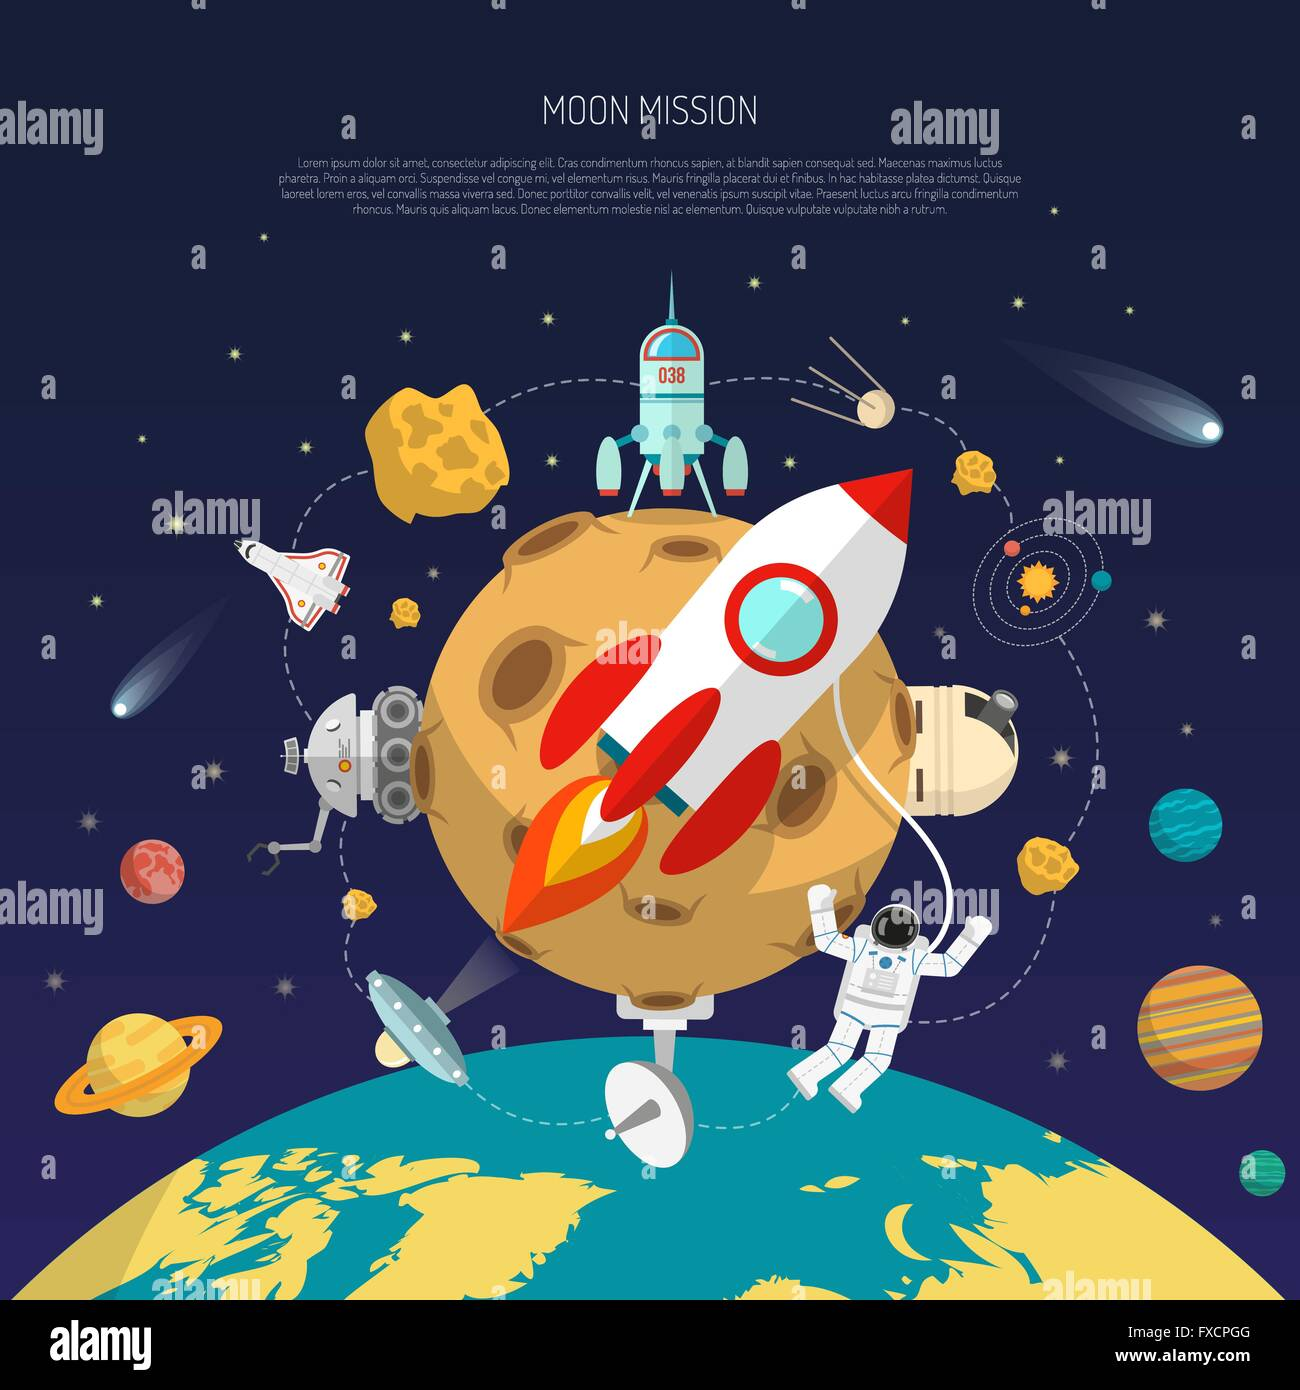 Space Mission Concept Stock Vector